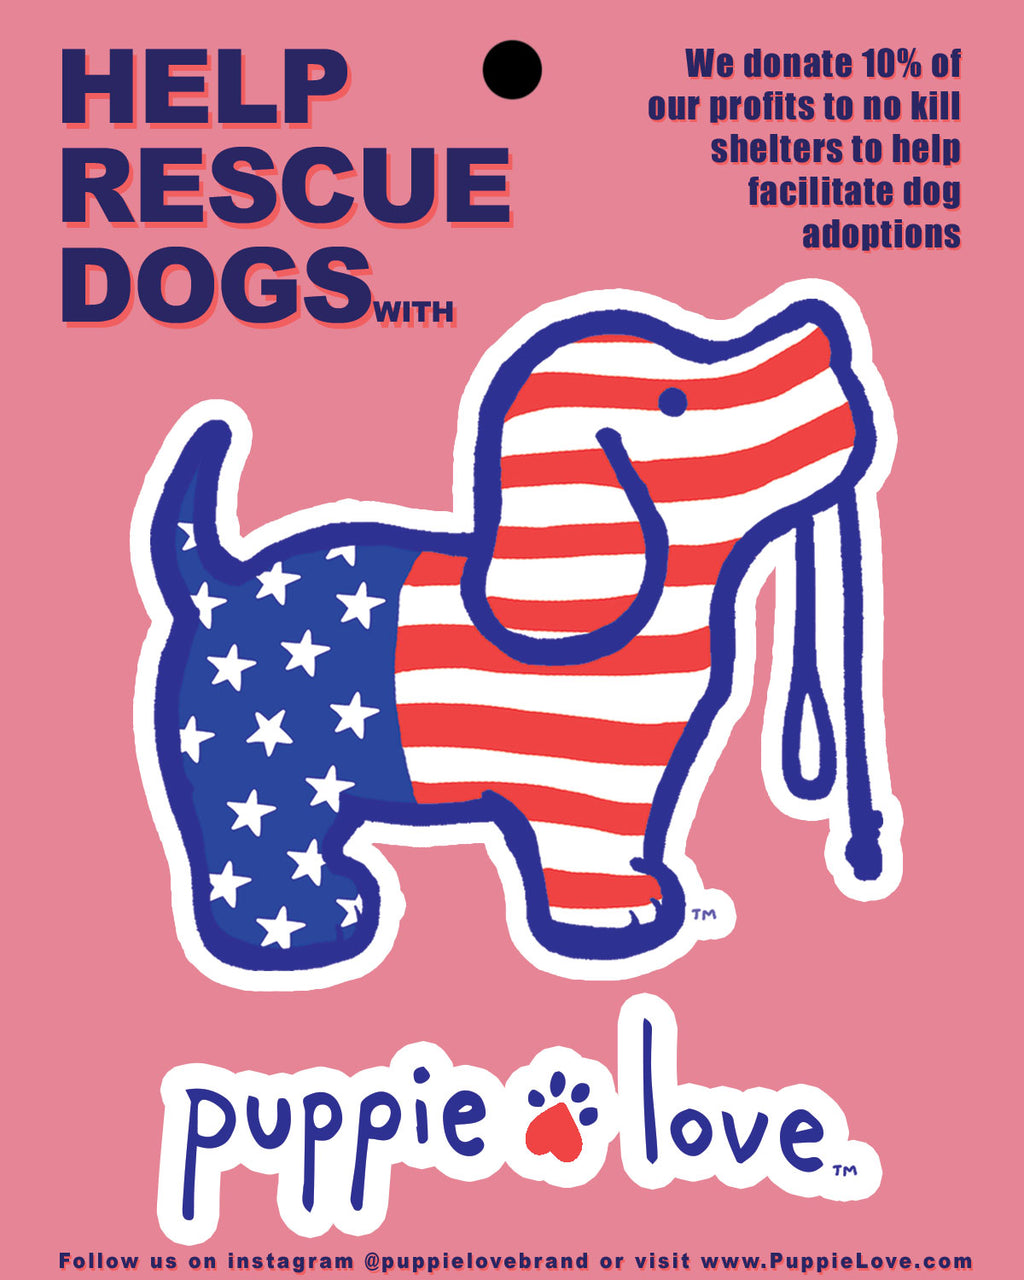 USA PUP STICKER - Puppie Love